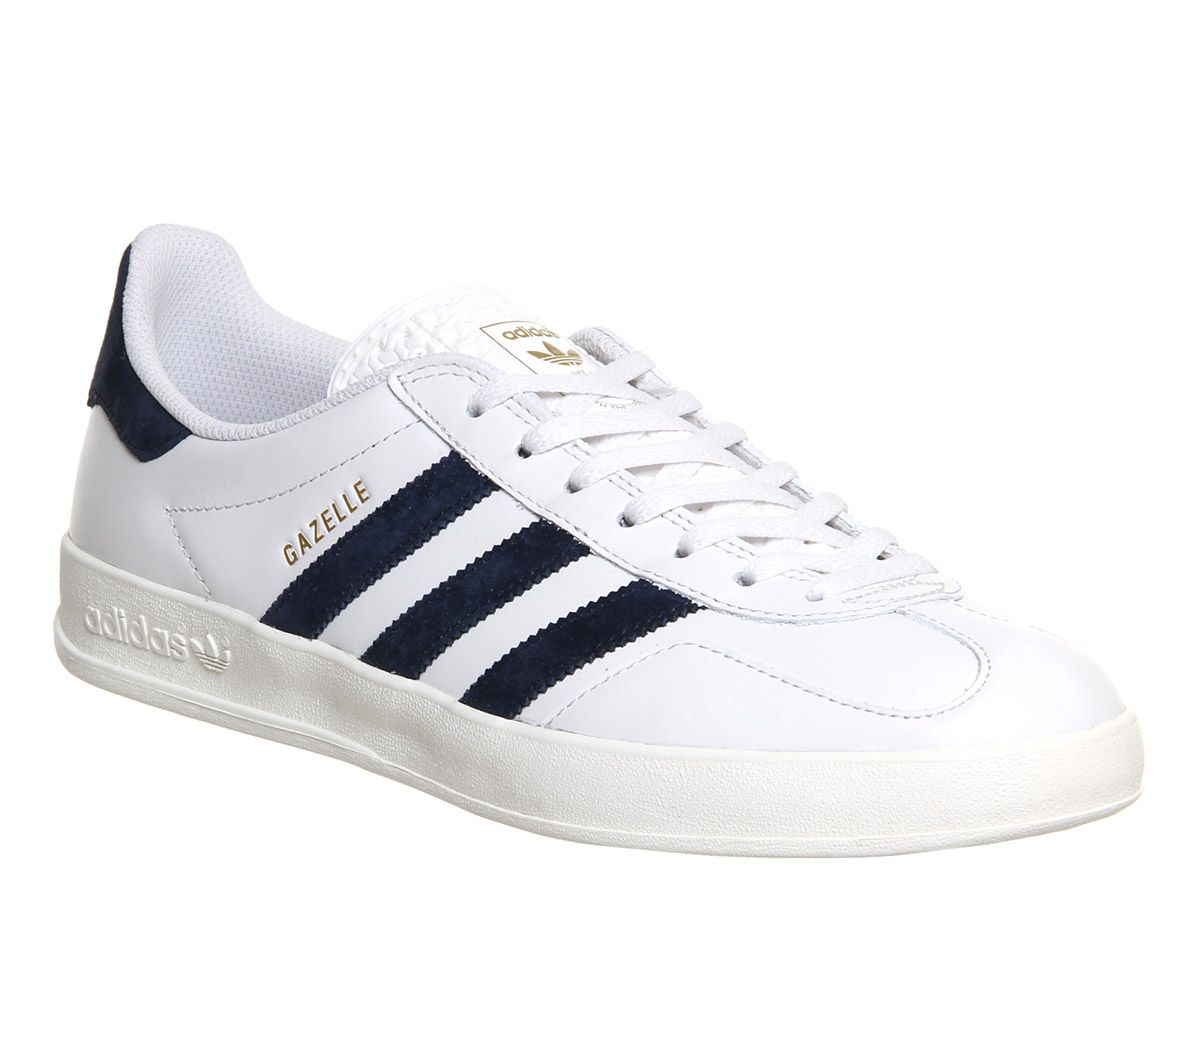 buy online f086b f78ed Adidas Gazelle Indoor Vintage White Leather Exclusive - His trainers    WEAR  Footwear   Pinterest   Adidas gazelle, White leather and Adidas